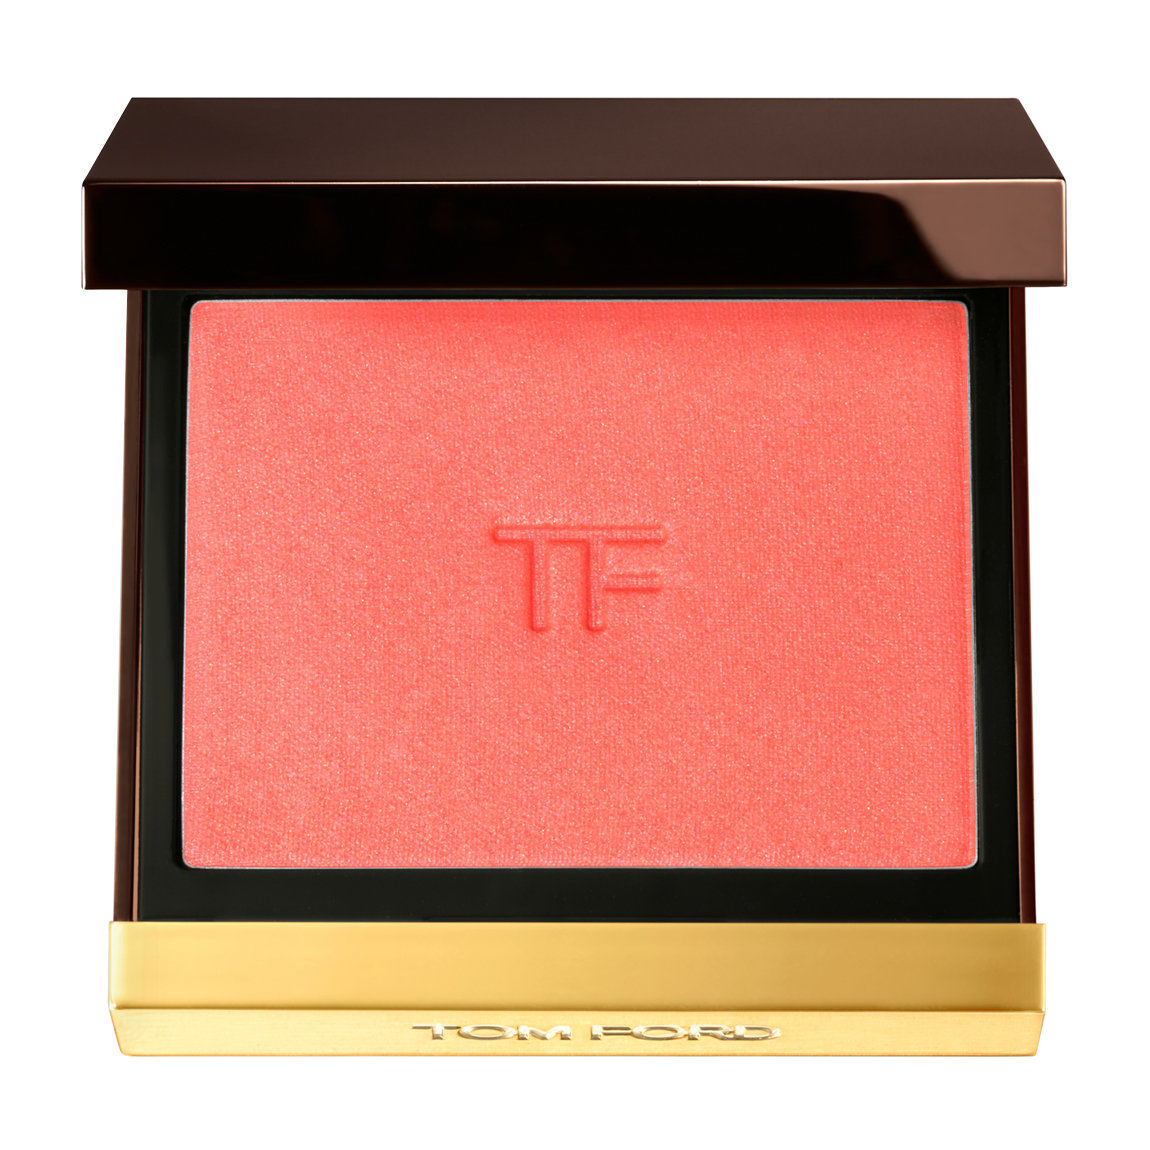 TOM FORD Cheek Color Flush product swatch.